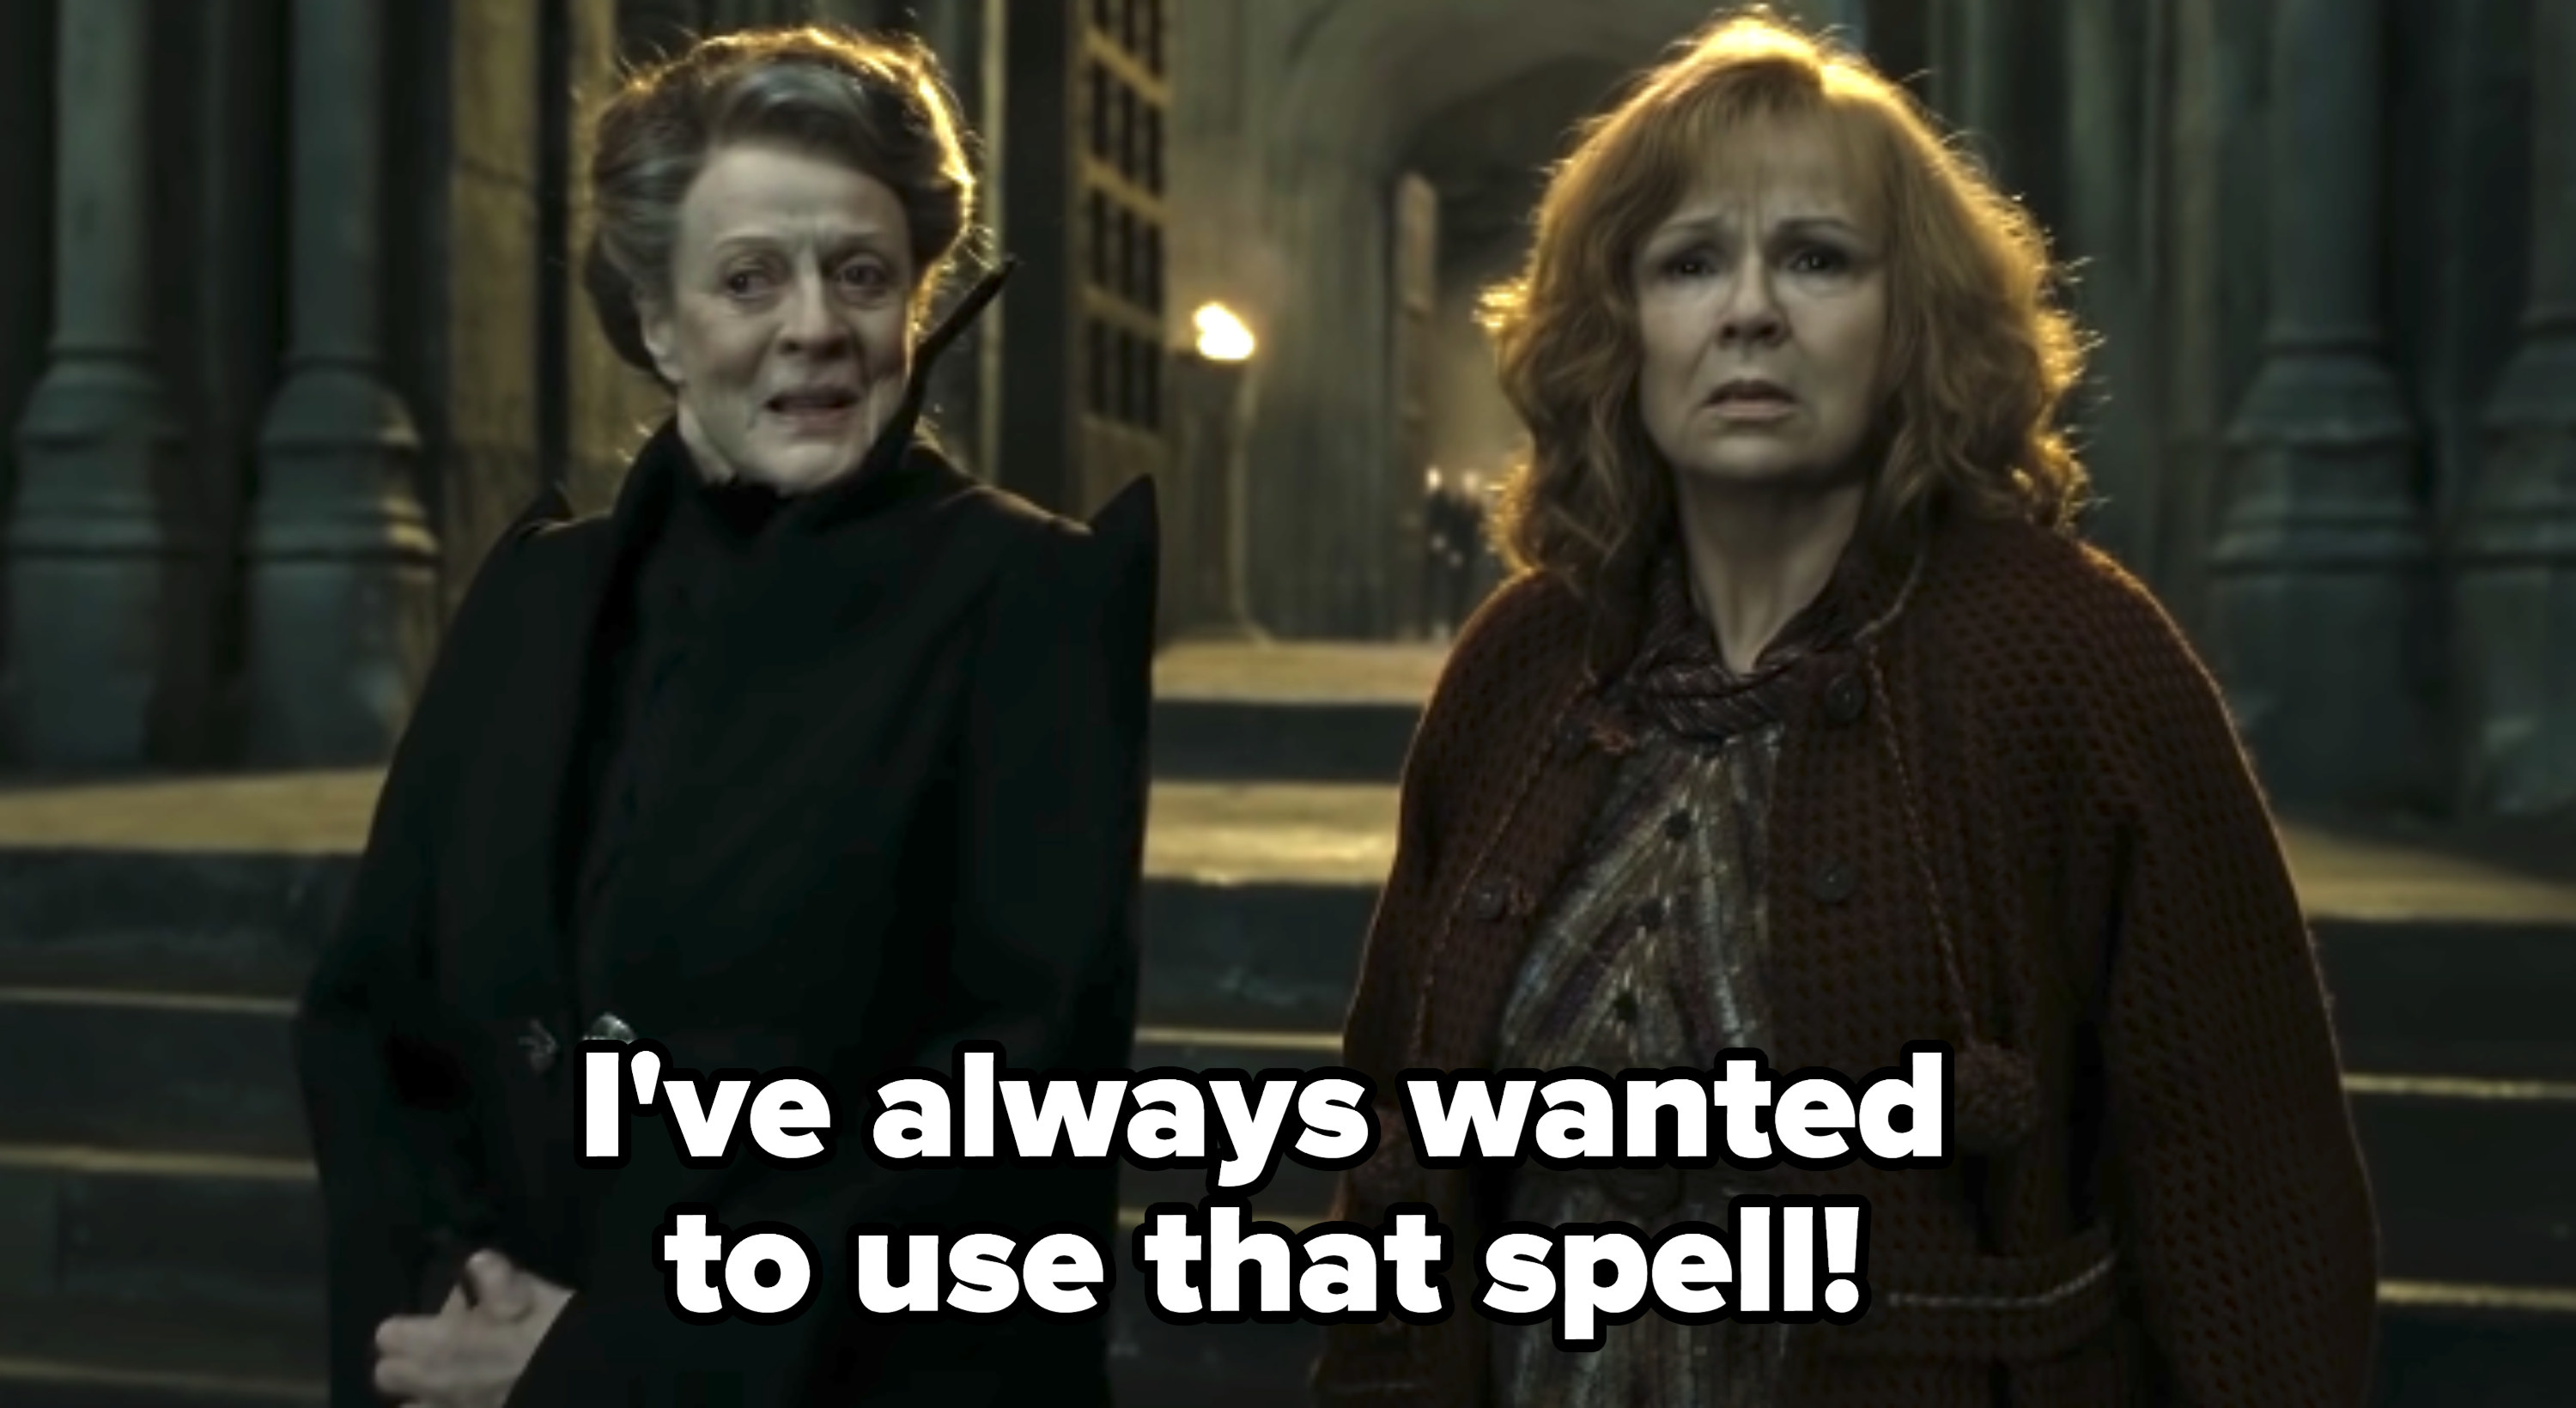 McGonagall telling Molly Weasley she always wanted to perform a spell during The Battle of Hogwarts